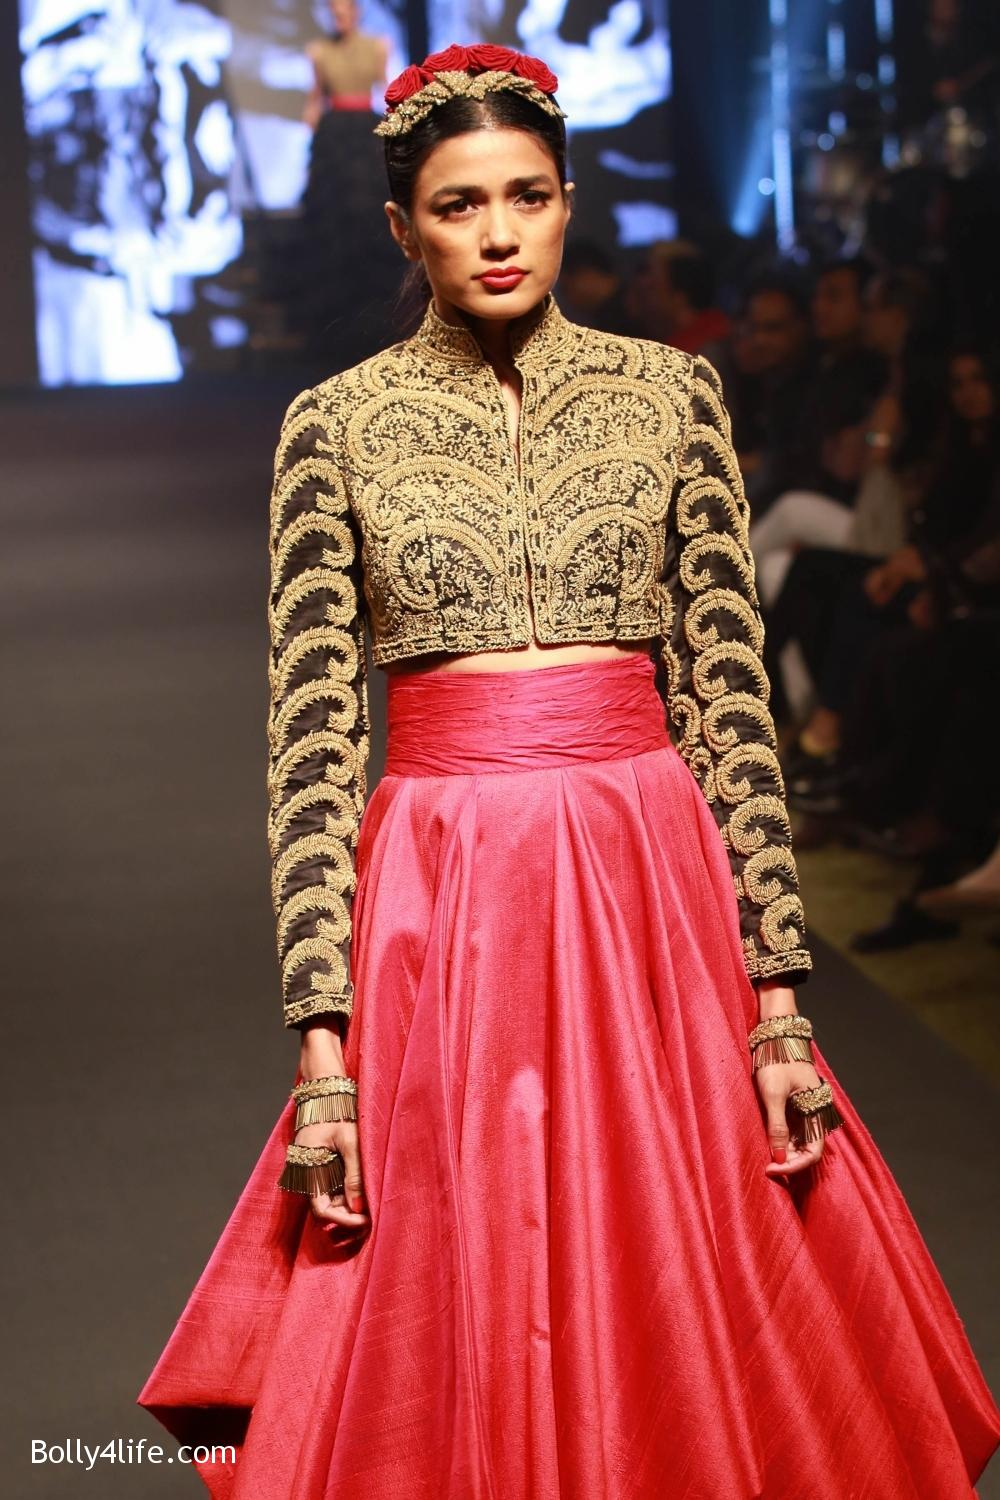 Sonam-Kapoor-walks-on-ramp-for-designers-Shantanu-and-Nikhils-show-during-the-Blenders-Pride-Fashion-Tour-2016-9.jpg